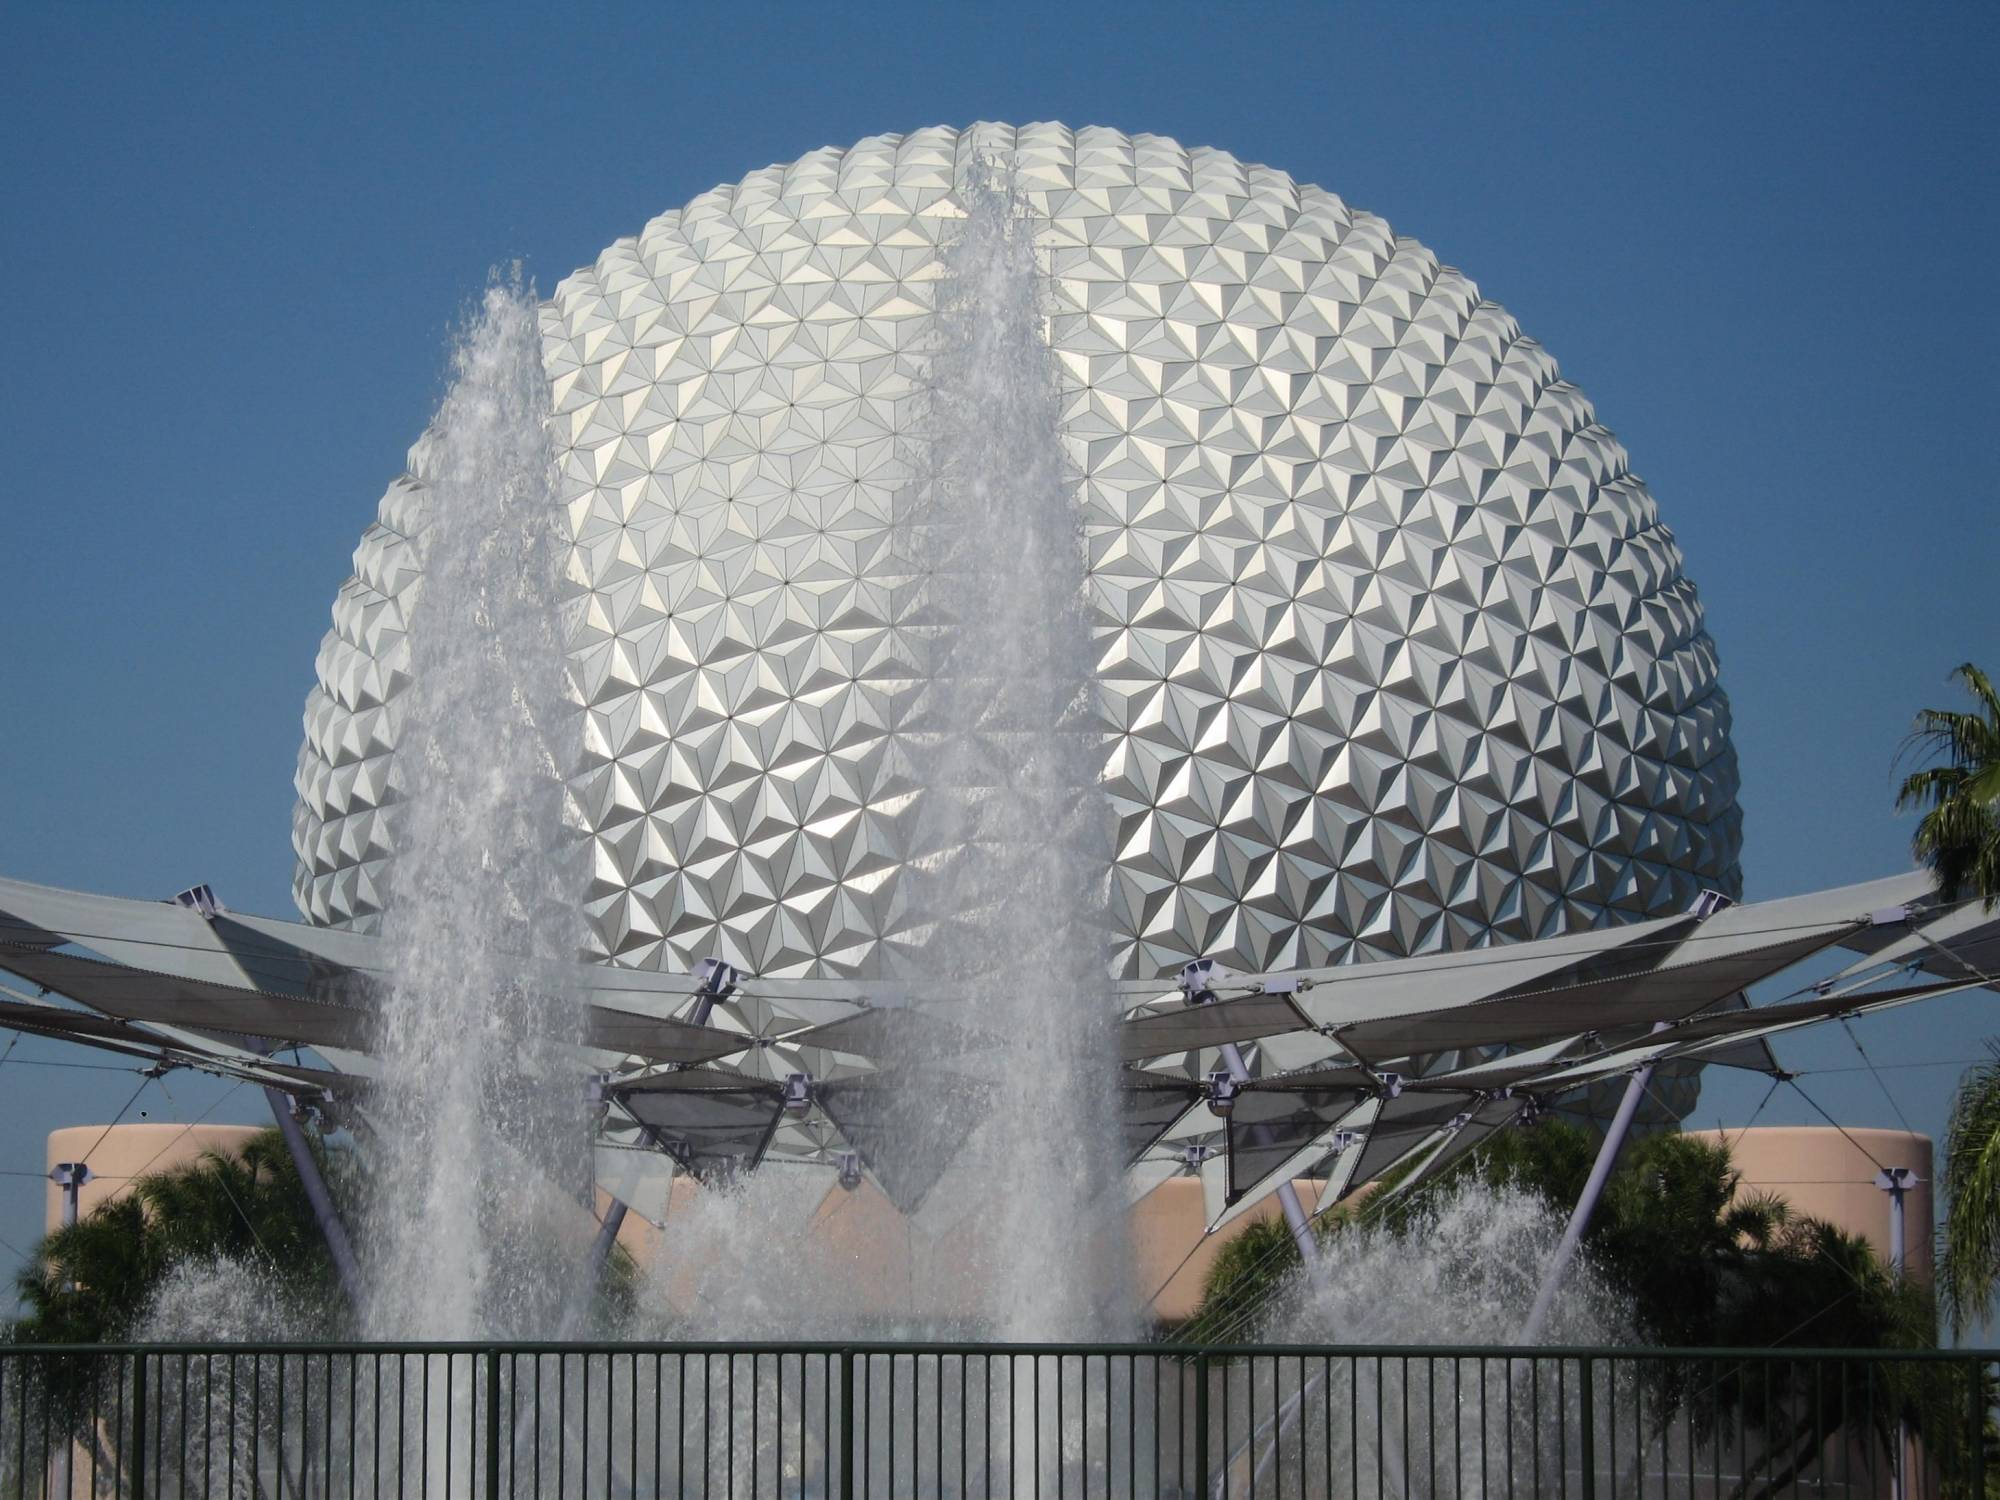 Spaceship Earth photo